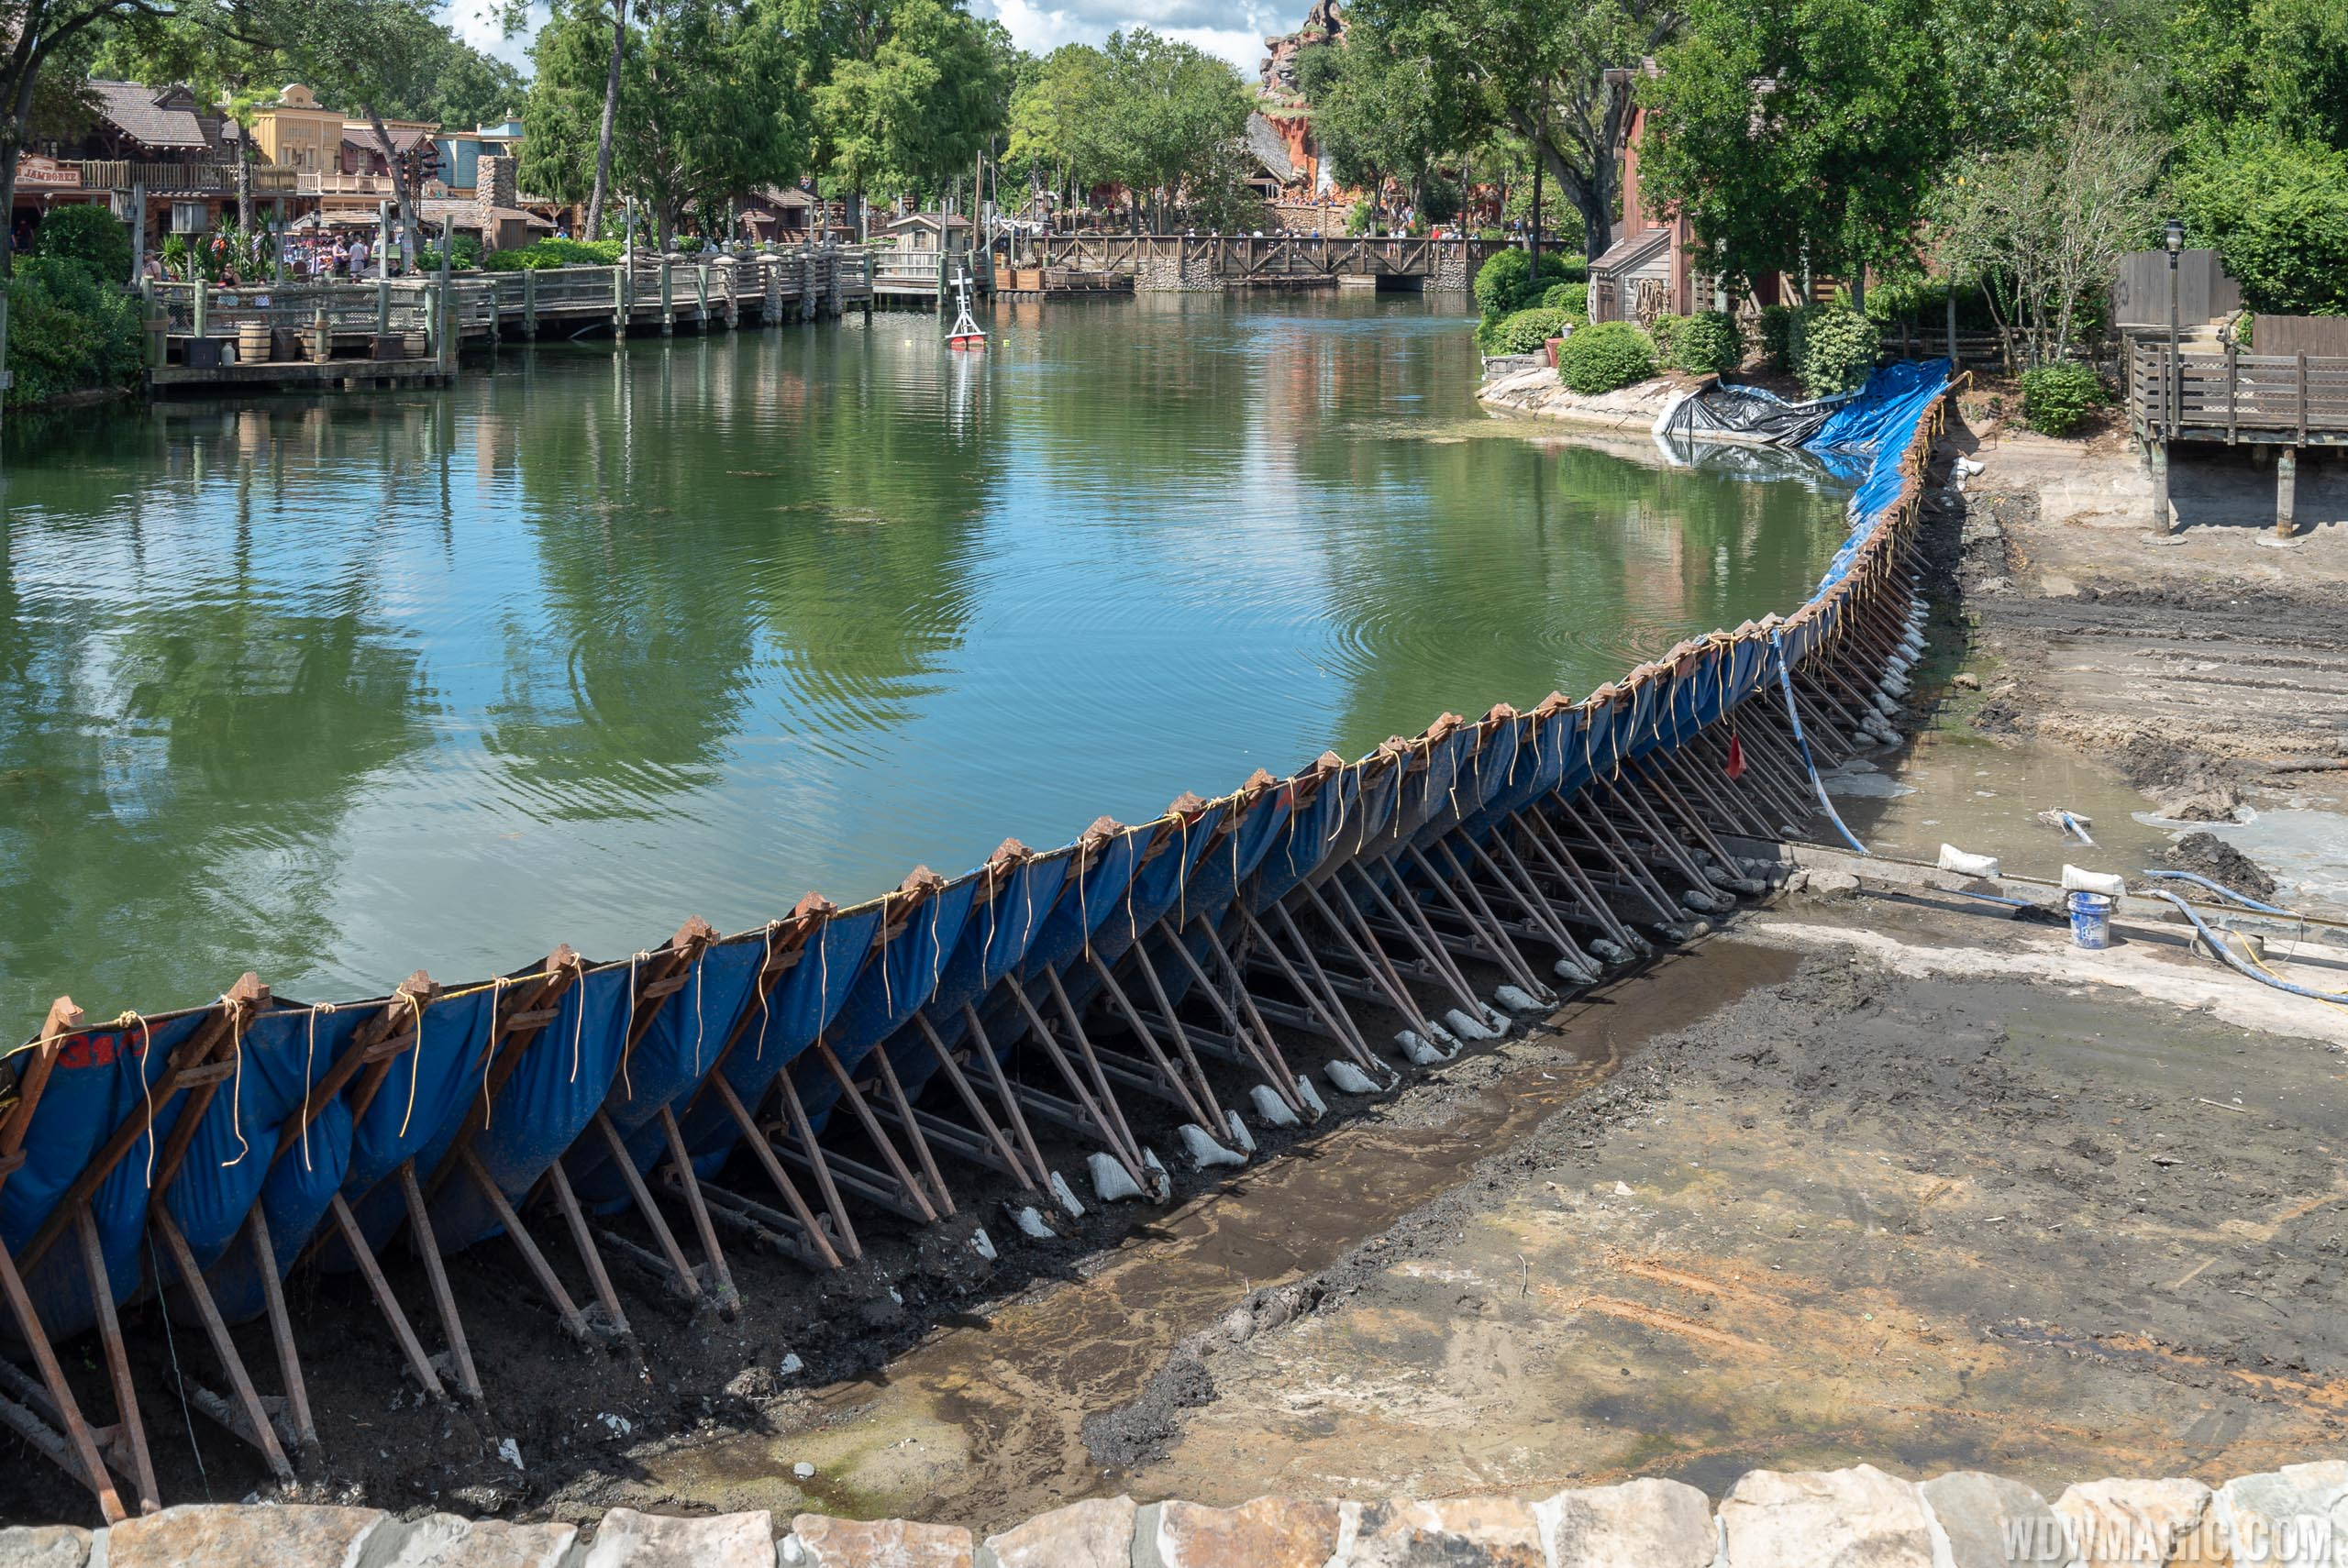 Rivers of America drained